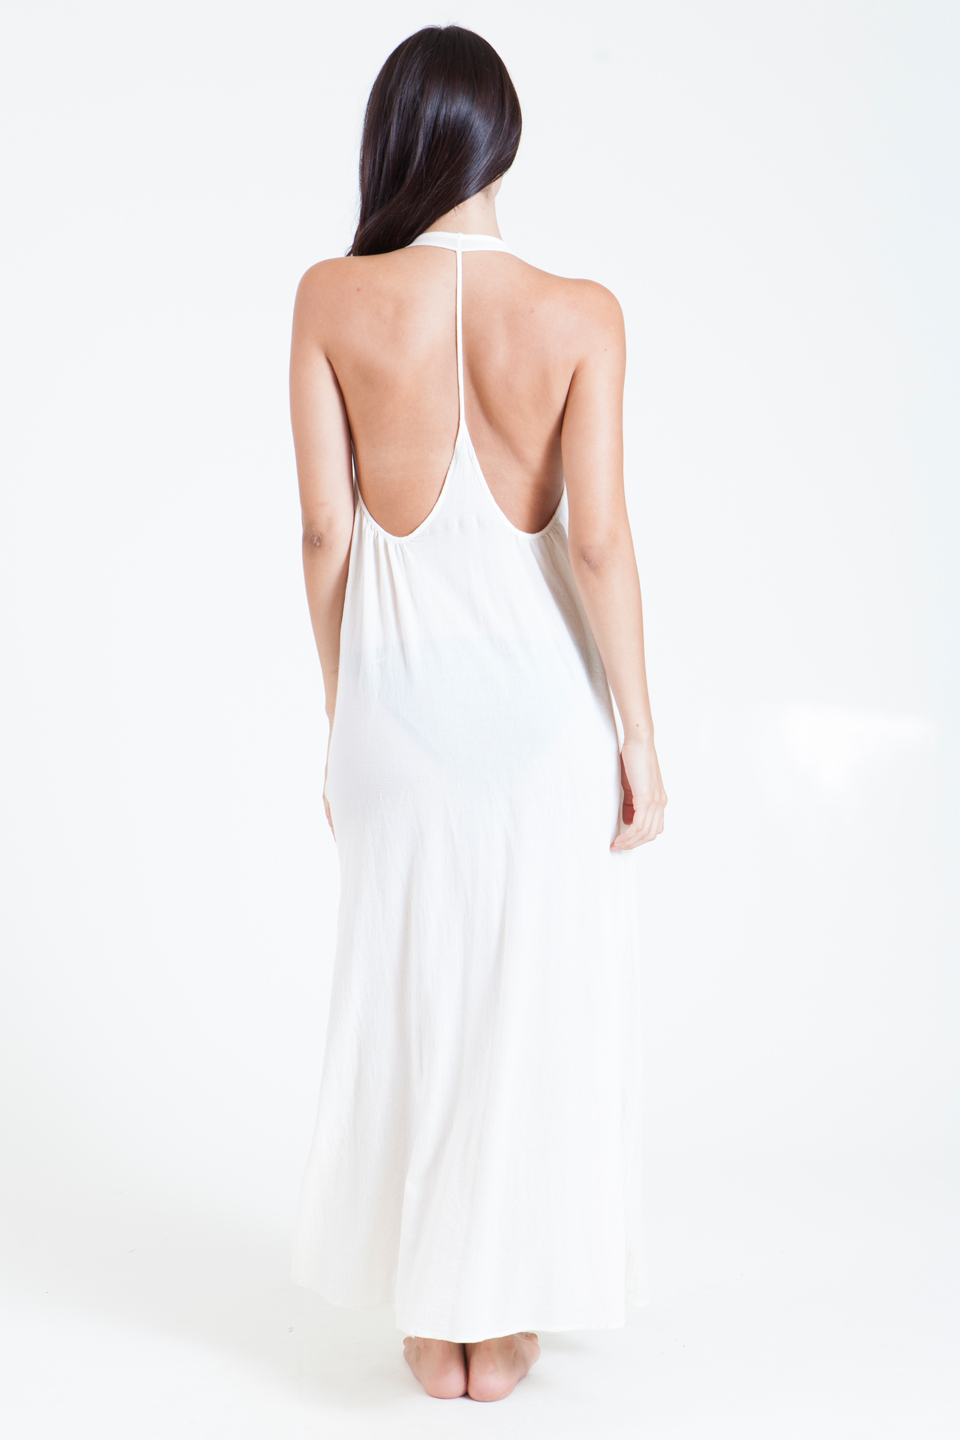 Antigua T-back maxi - white